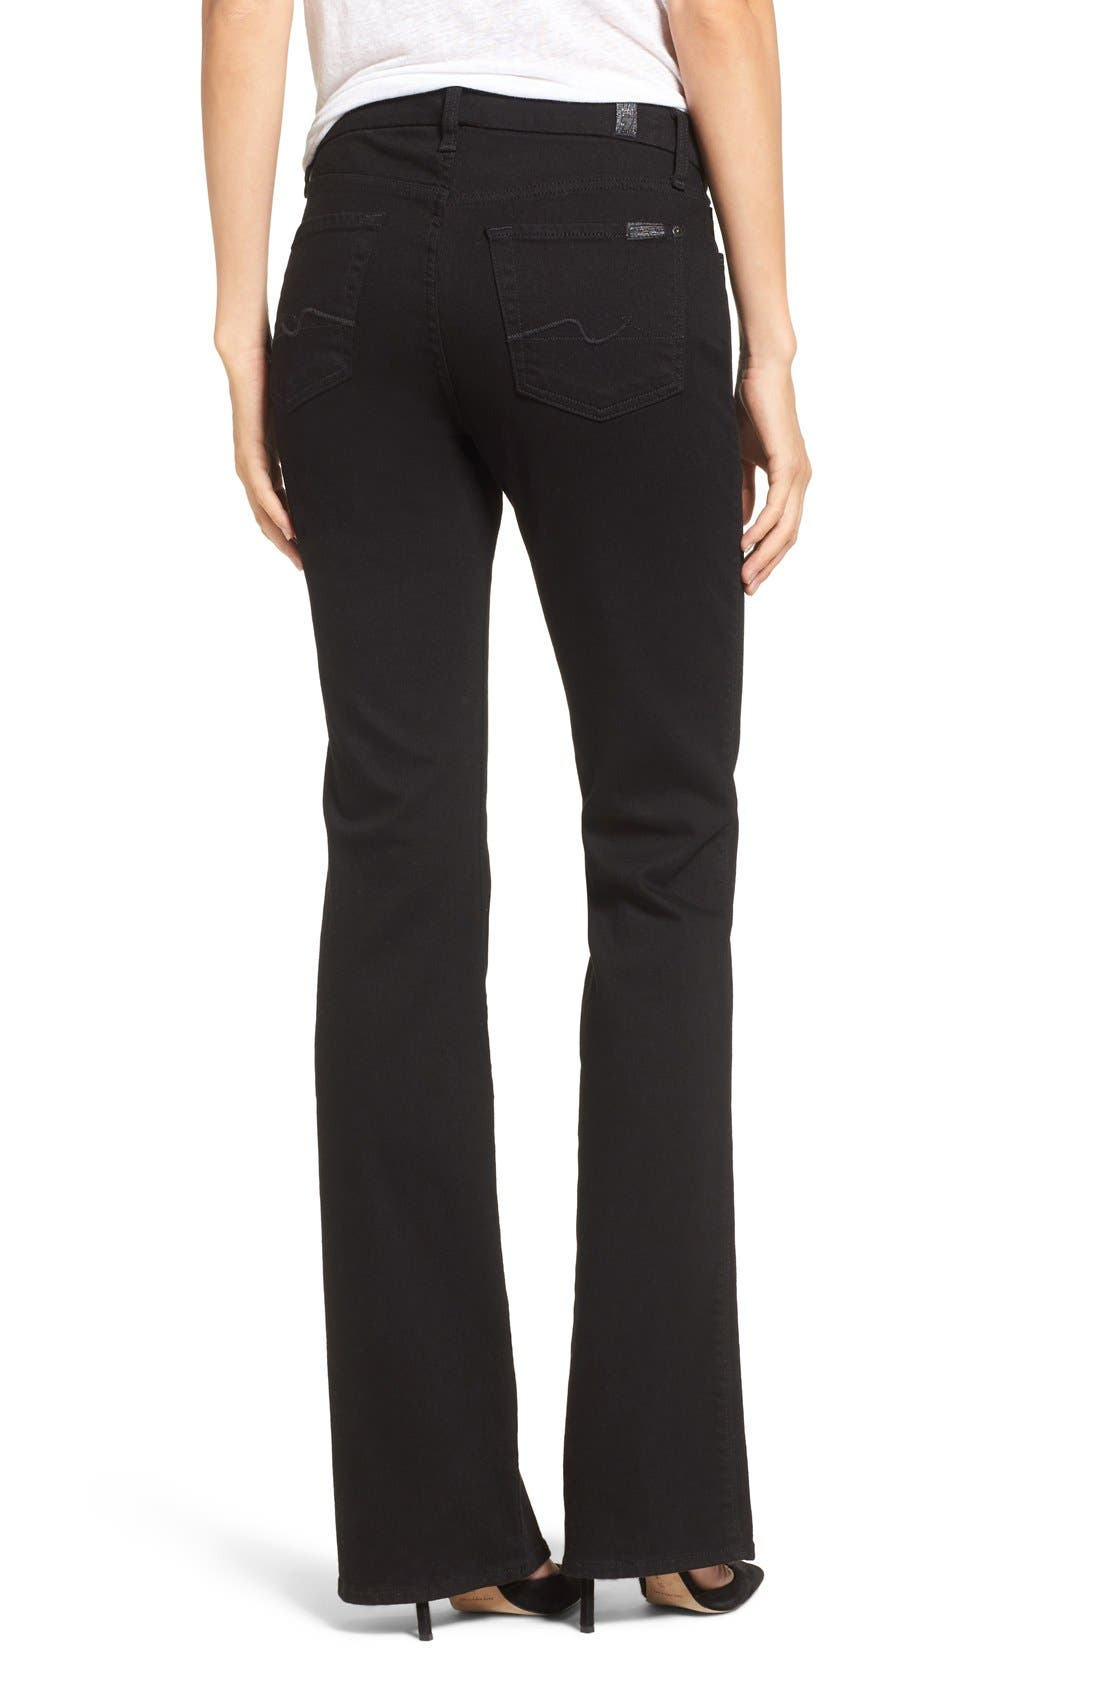 'Kimmie' Bootcut Jeans,                             Alternate thumbnail 2, color,                             Washed Overdyed Black